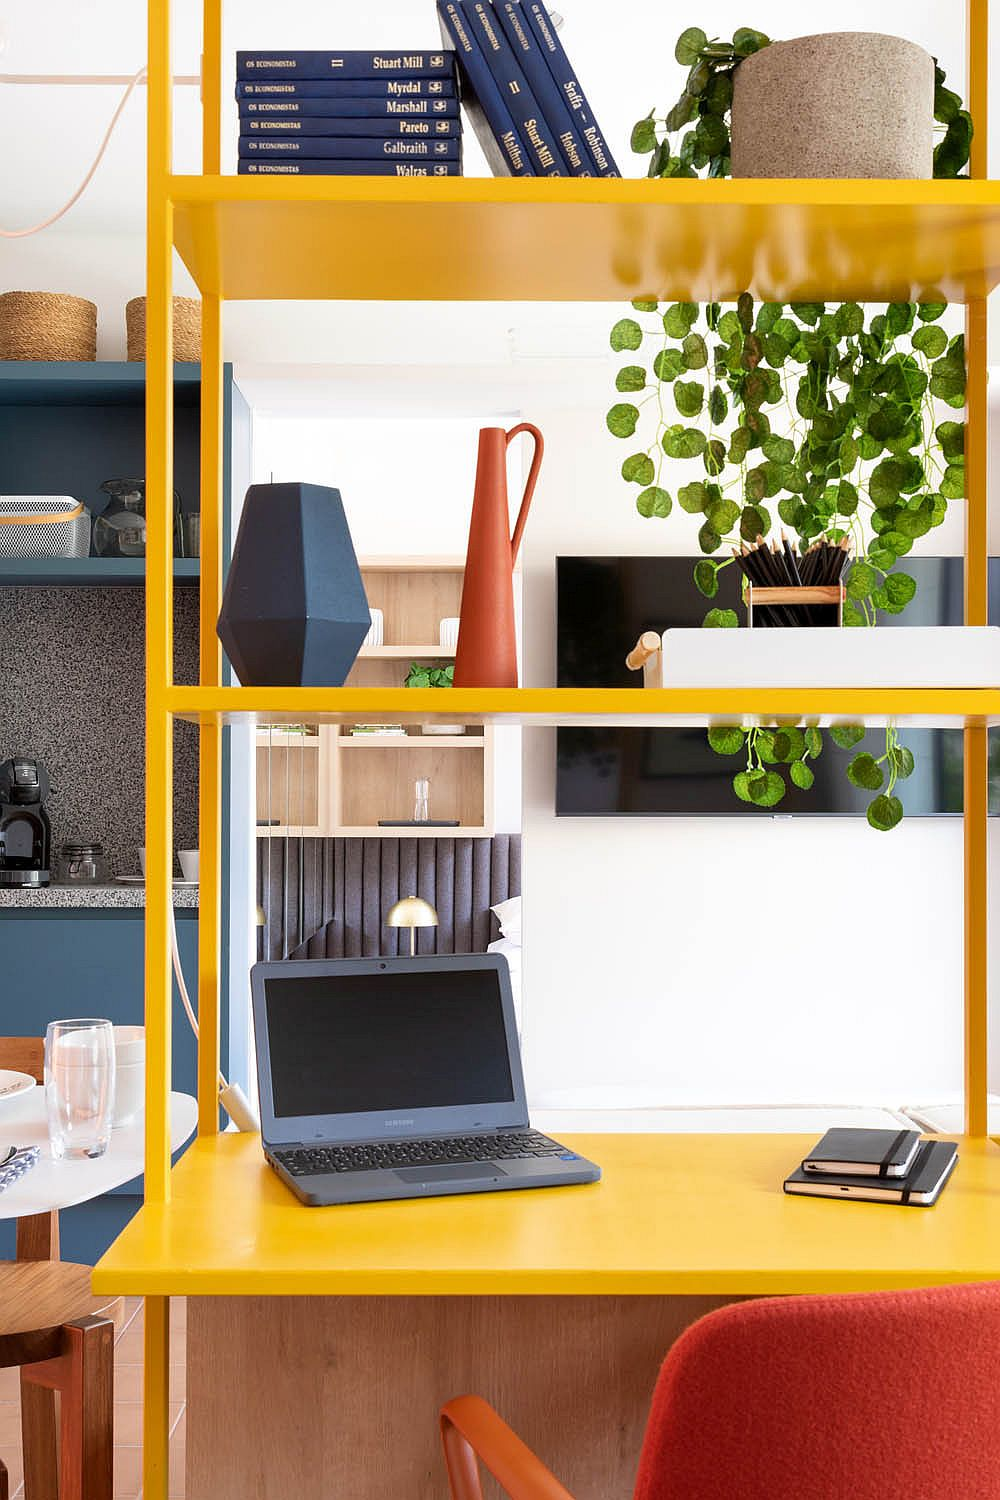 Bespoke-home-workstation-in-yellow-adds-color-and-textural-contrast-to-the-interior-51185